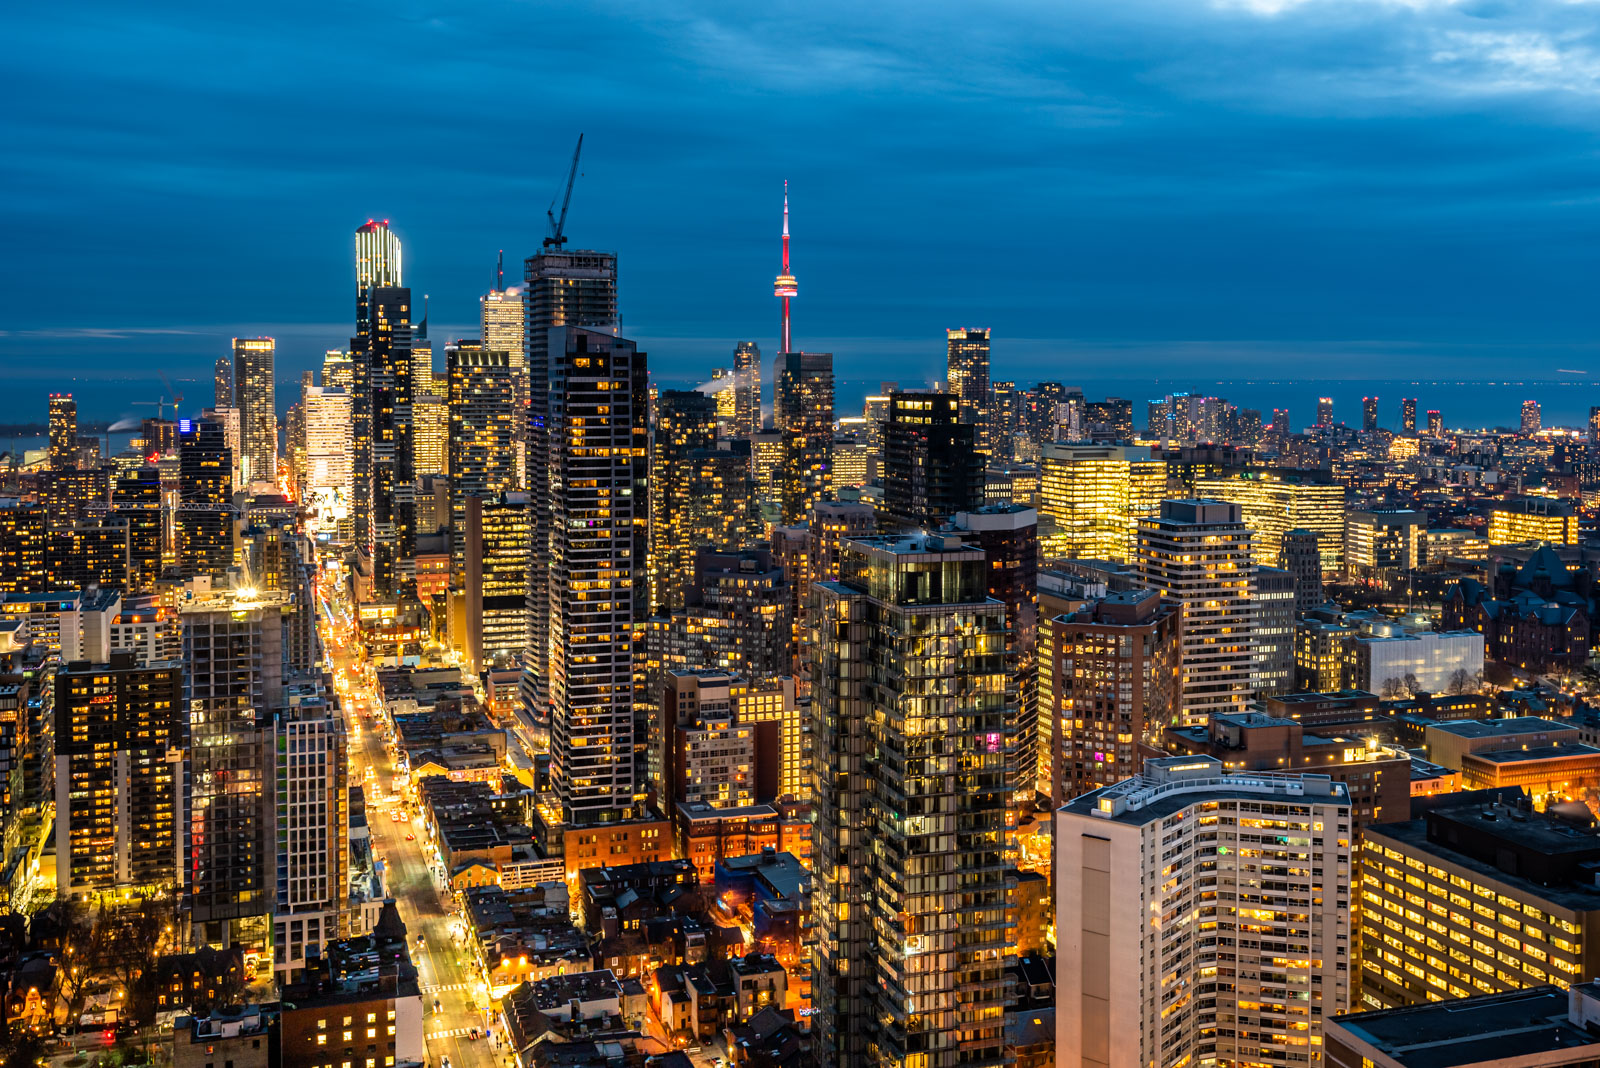 Aerial view of Toronto skyline at night with bright city lights and streets.